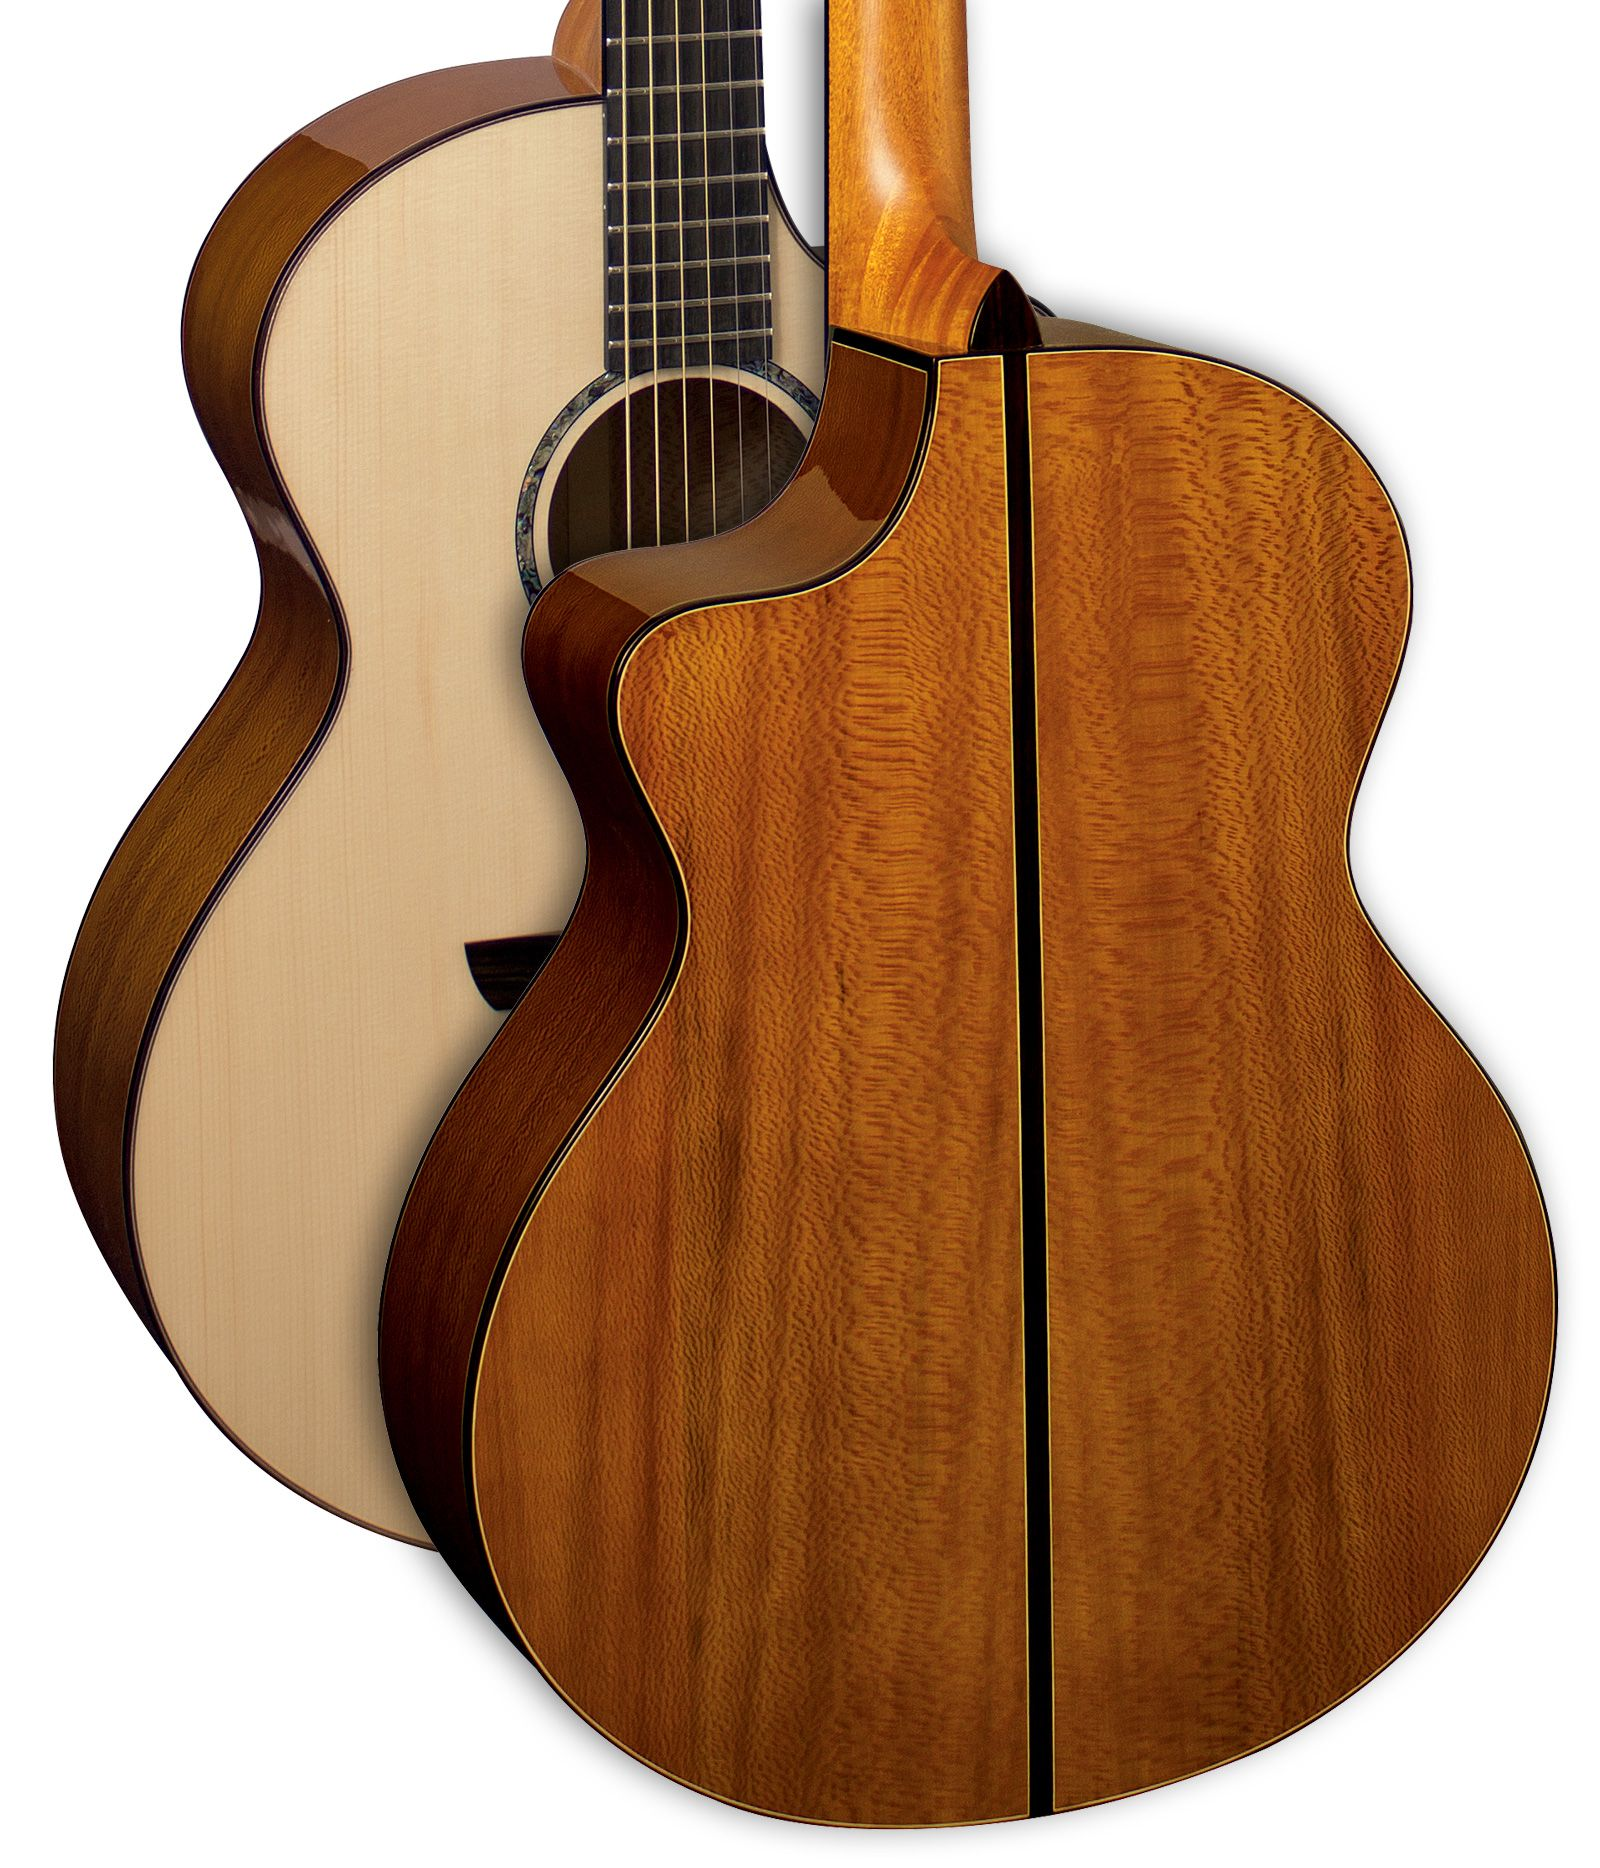 Faith Acoustic Guitar Signature Series London Plane Tree From The Uk Catalogue Image Neptune Body Shape Designed By Patr Acoustic Guitar Cool Guitar Guitar